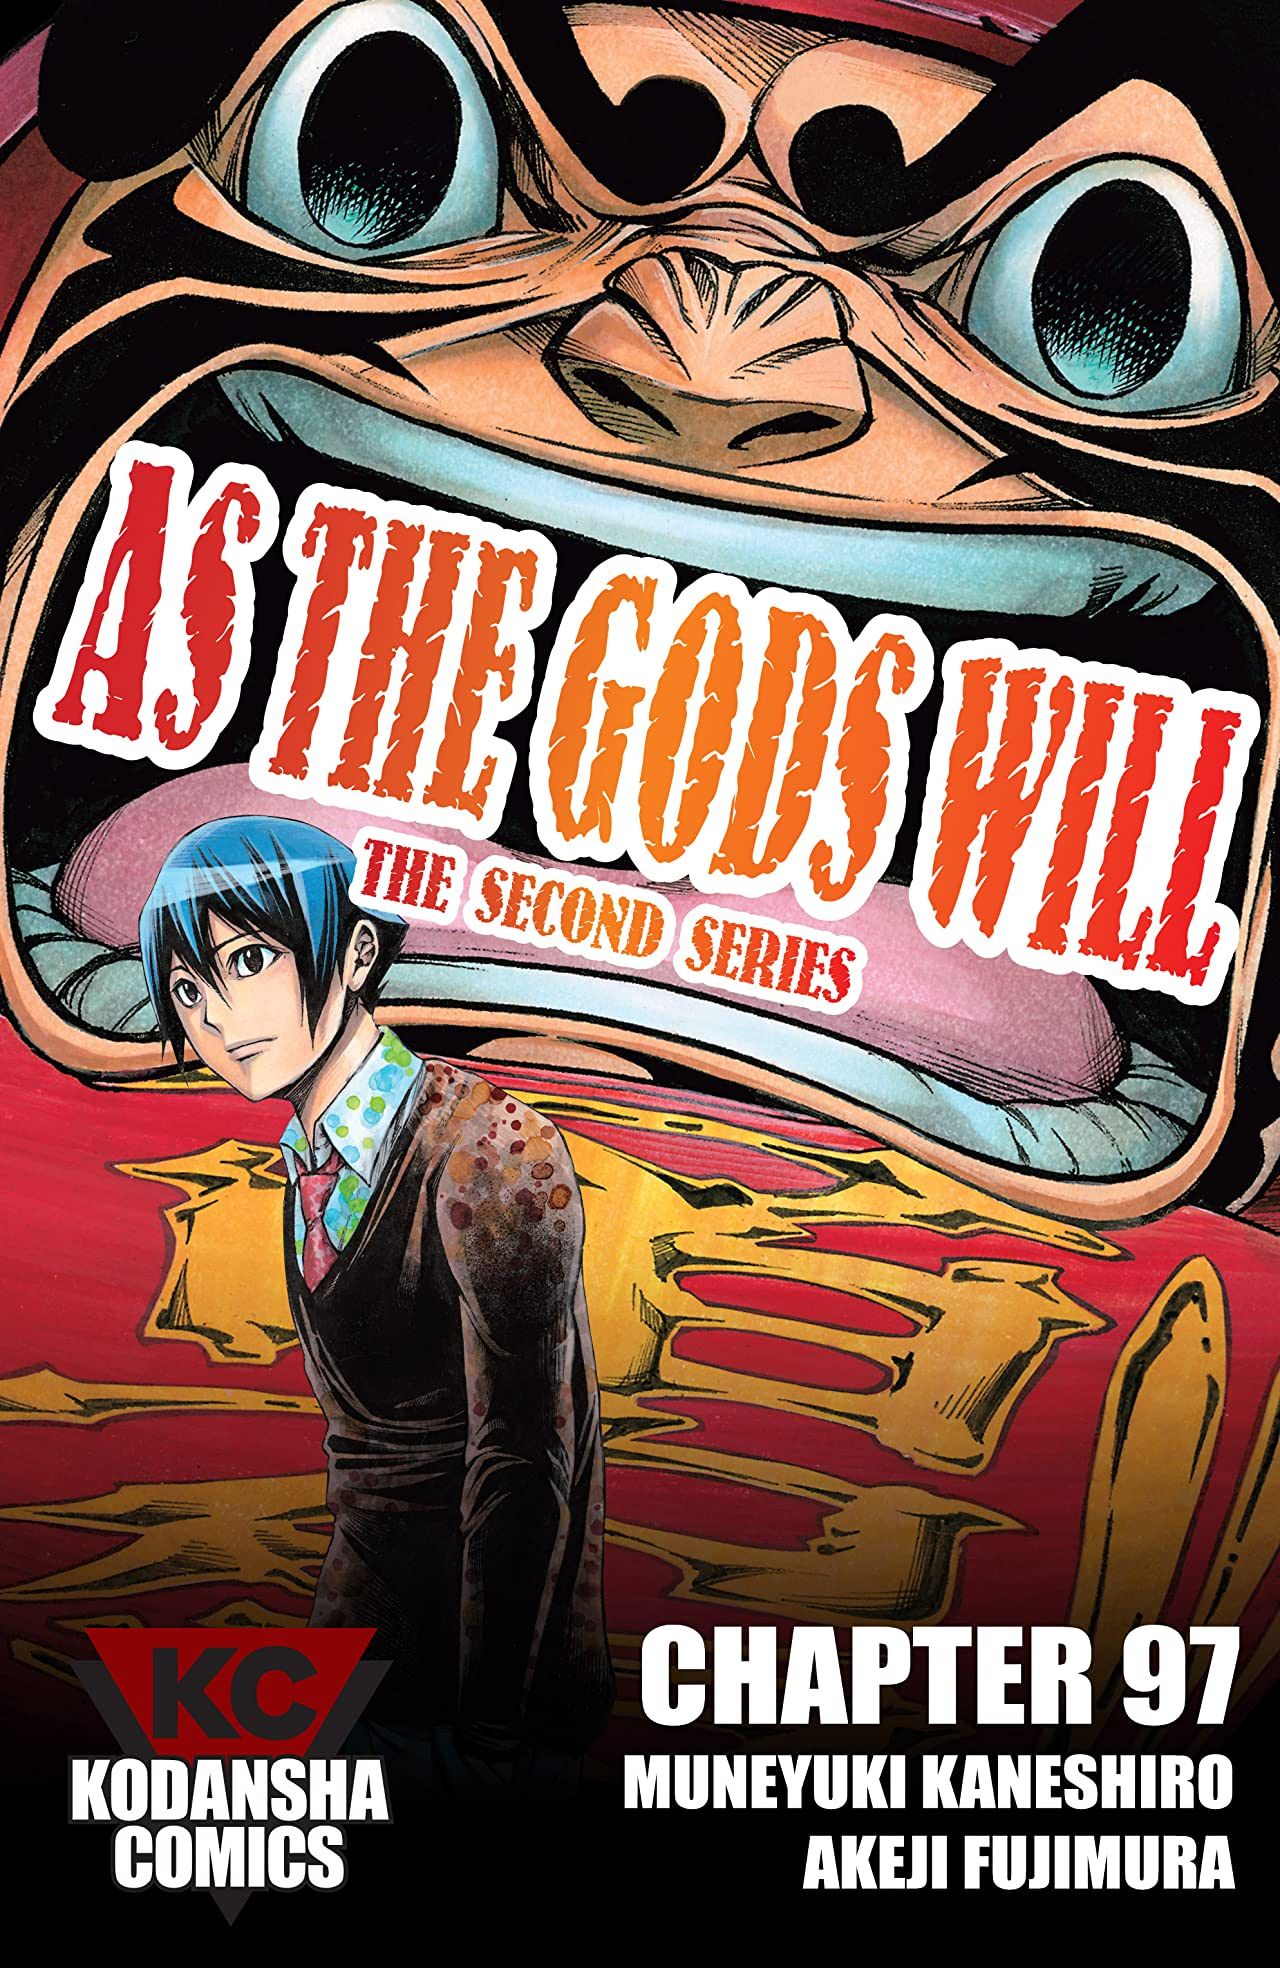 As The Gods Will: The Second Series #97